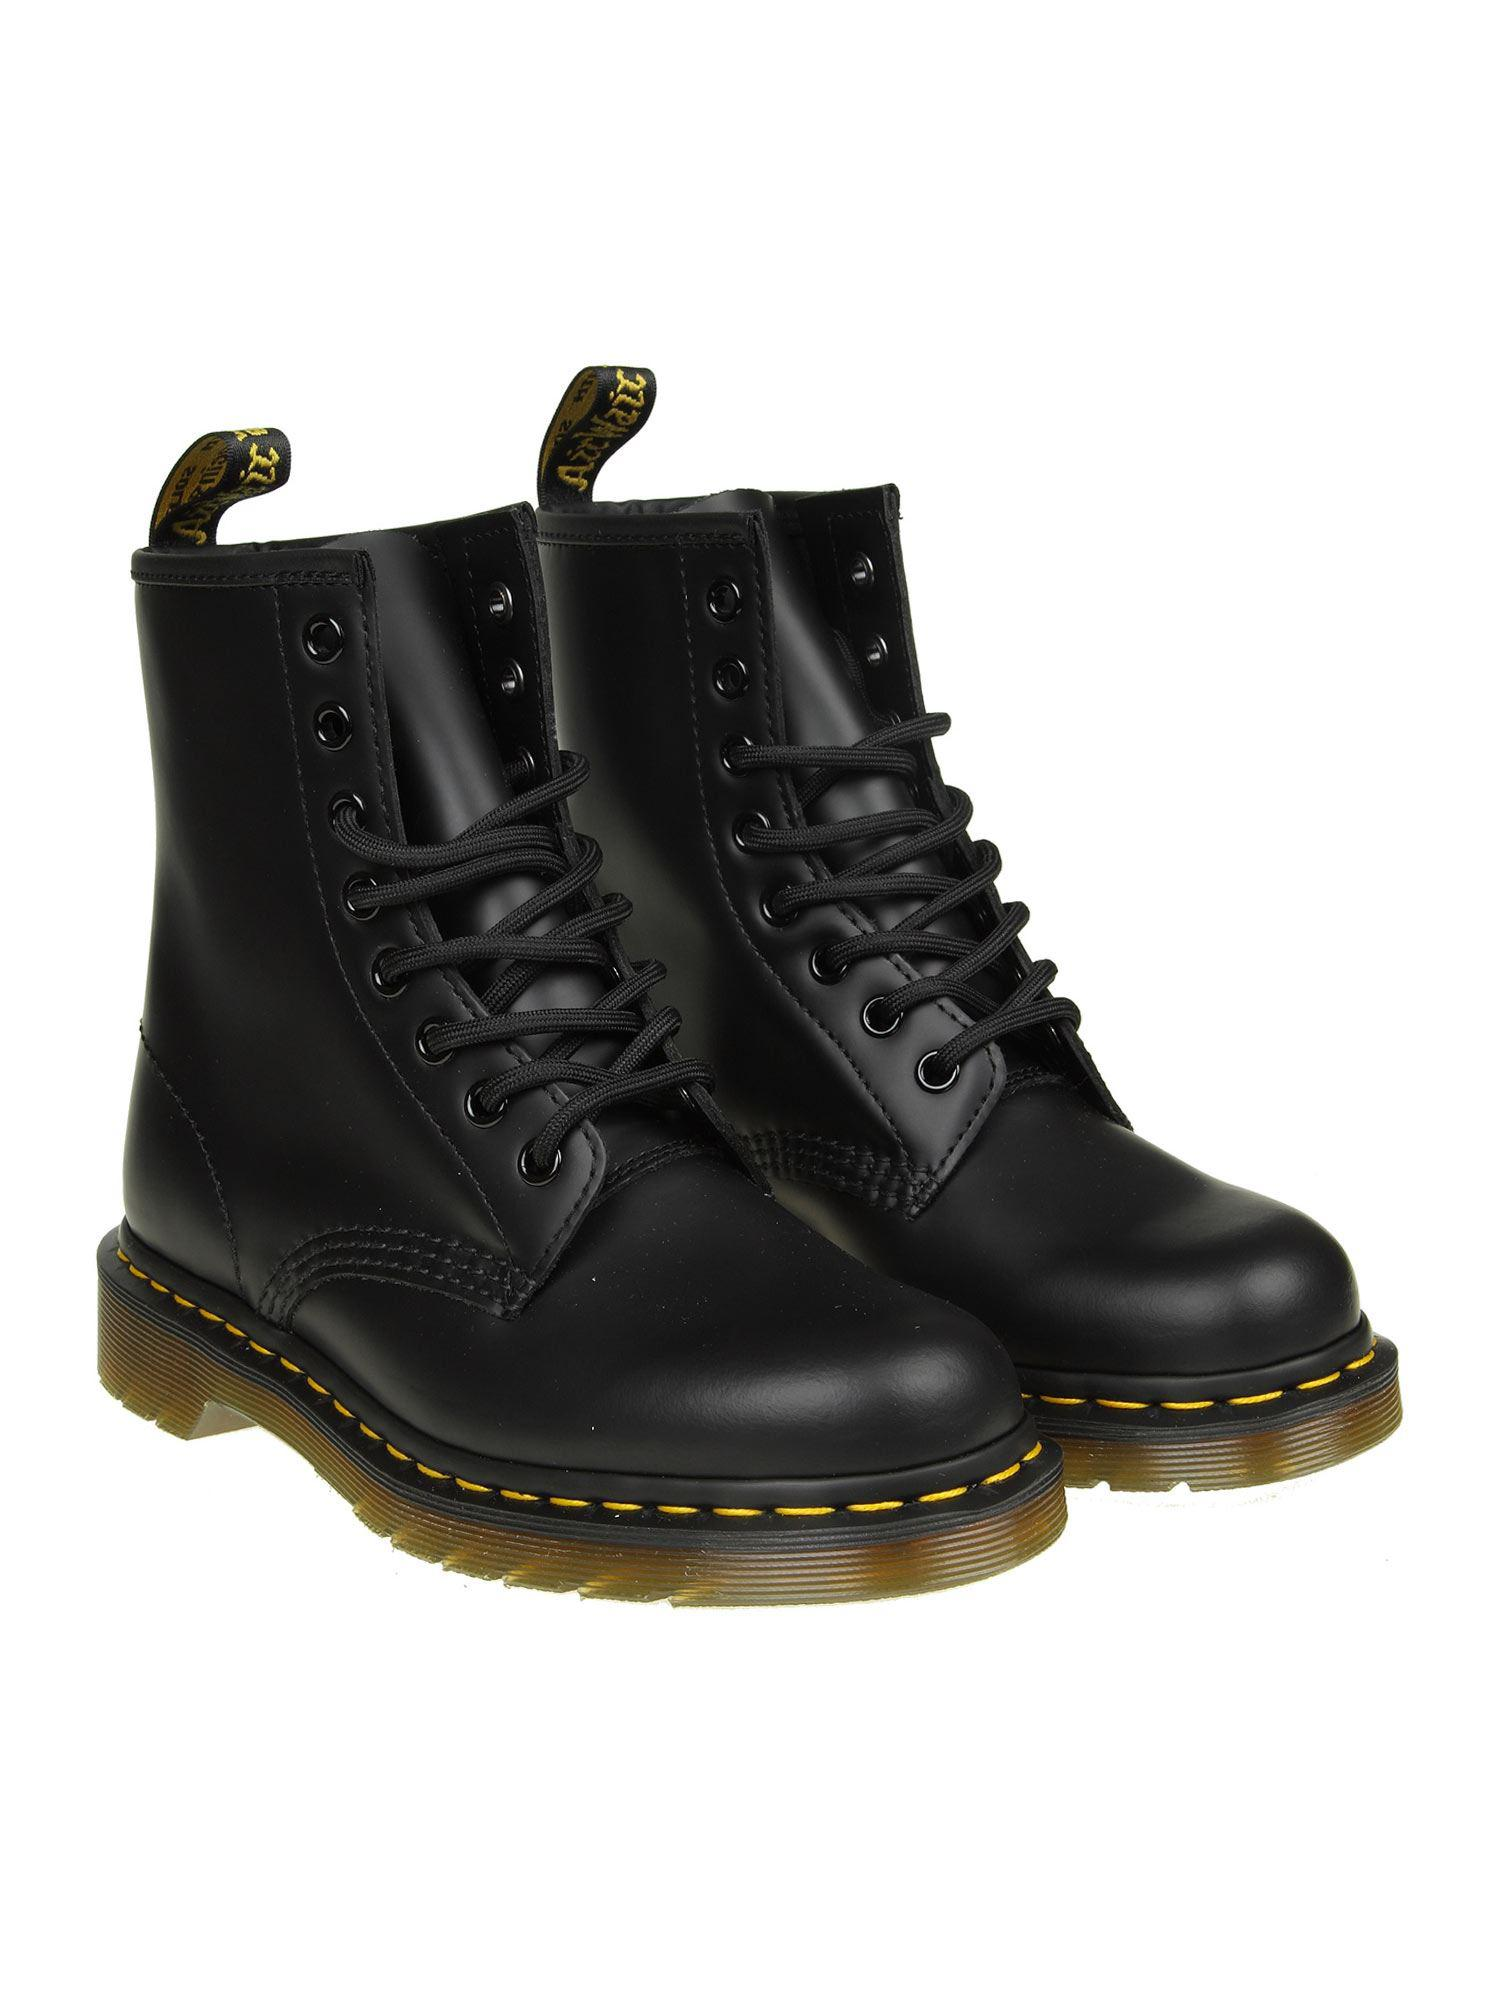 Dr. Martens - 1460 Smooth Black Ankle Boots - Lyst. View fullscreen 0ff1a8381d70